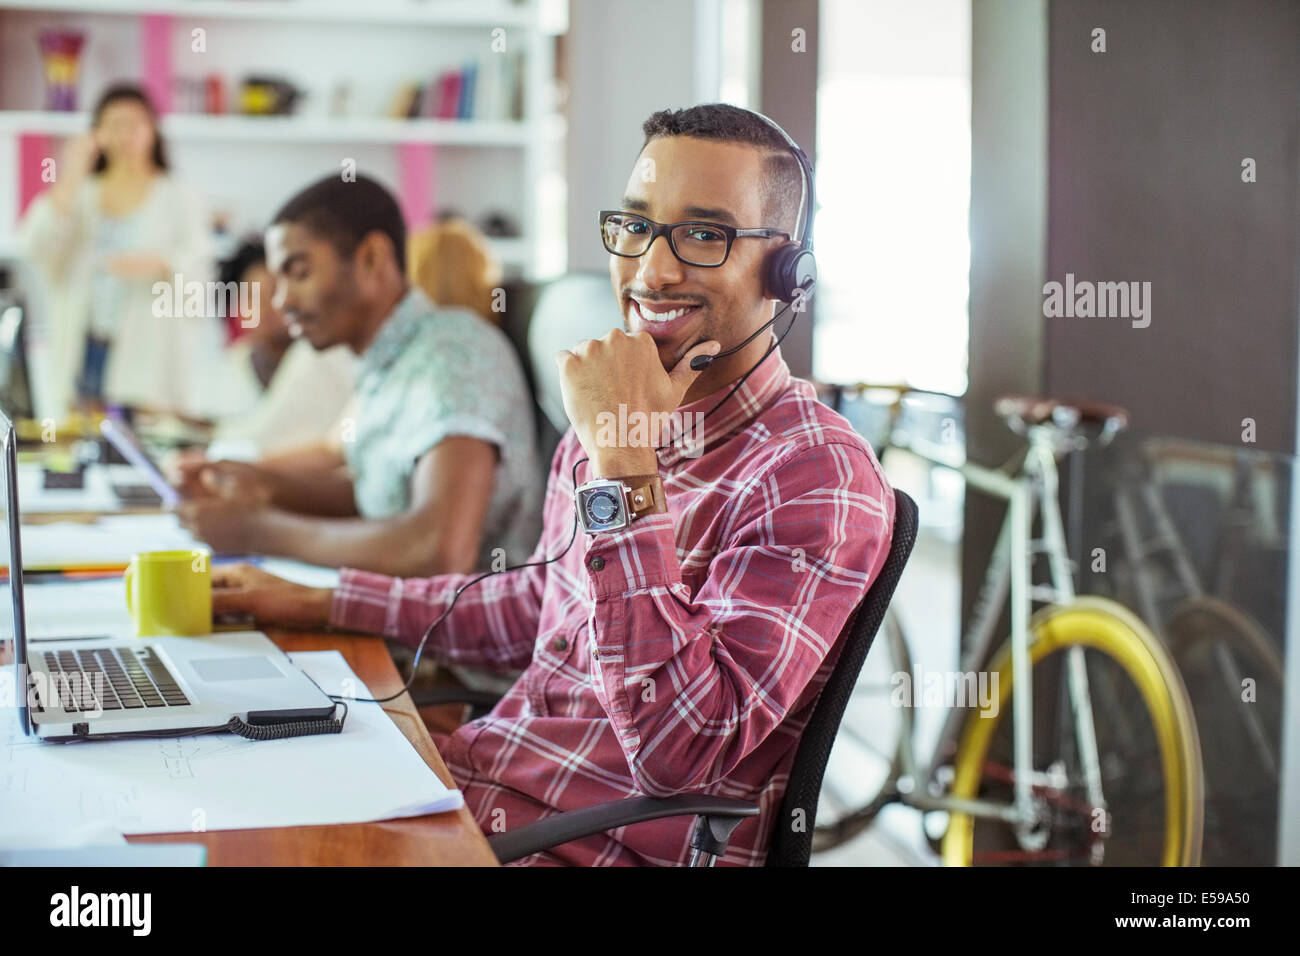 Man smiling at desk in office Photo Stock